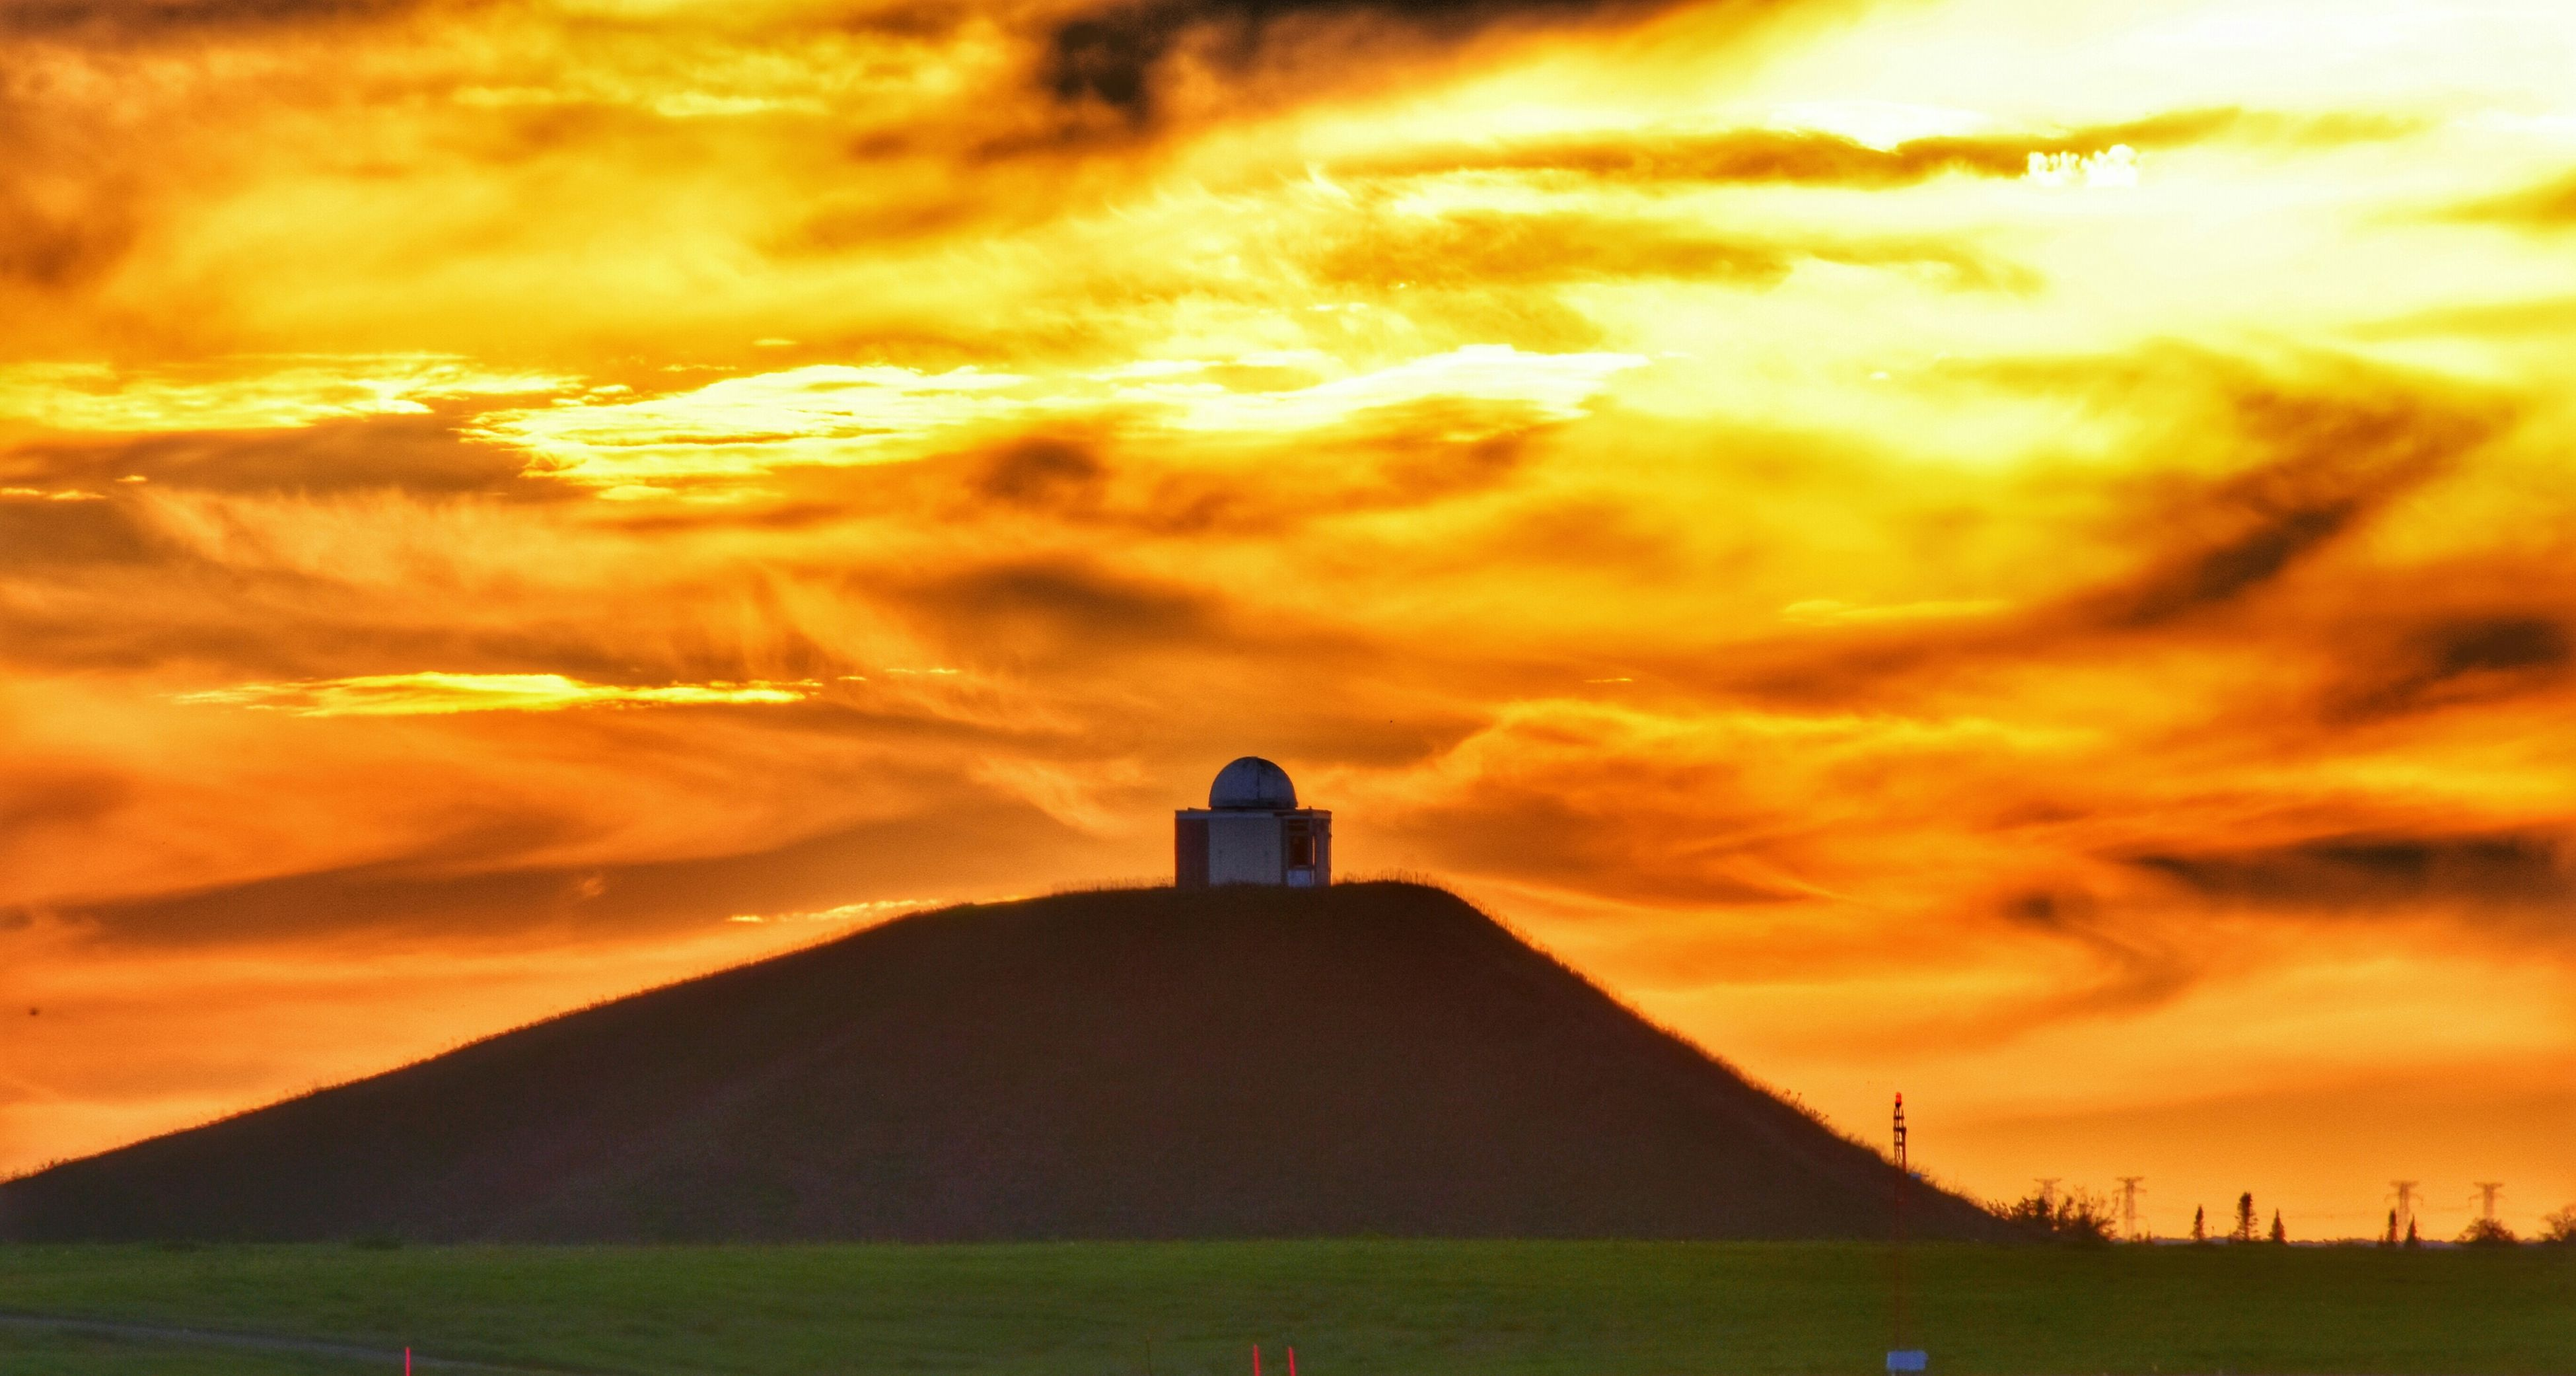 sunset, building exterior, architecture, built structure, sky, lighthouse, cloud - sky, orange color, cloudy, guidance, dramatic sky, tower, scenics, beauty in nature, silhouette, cloud, nature, weather, direction, tranquility